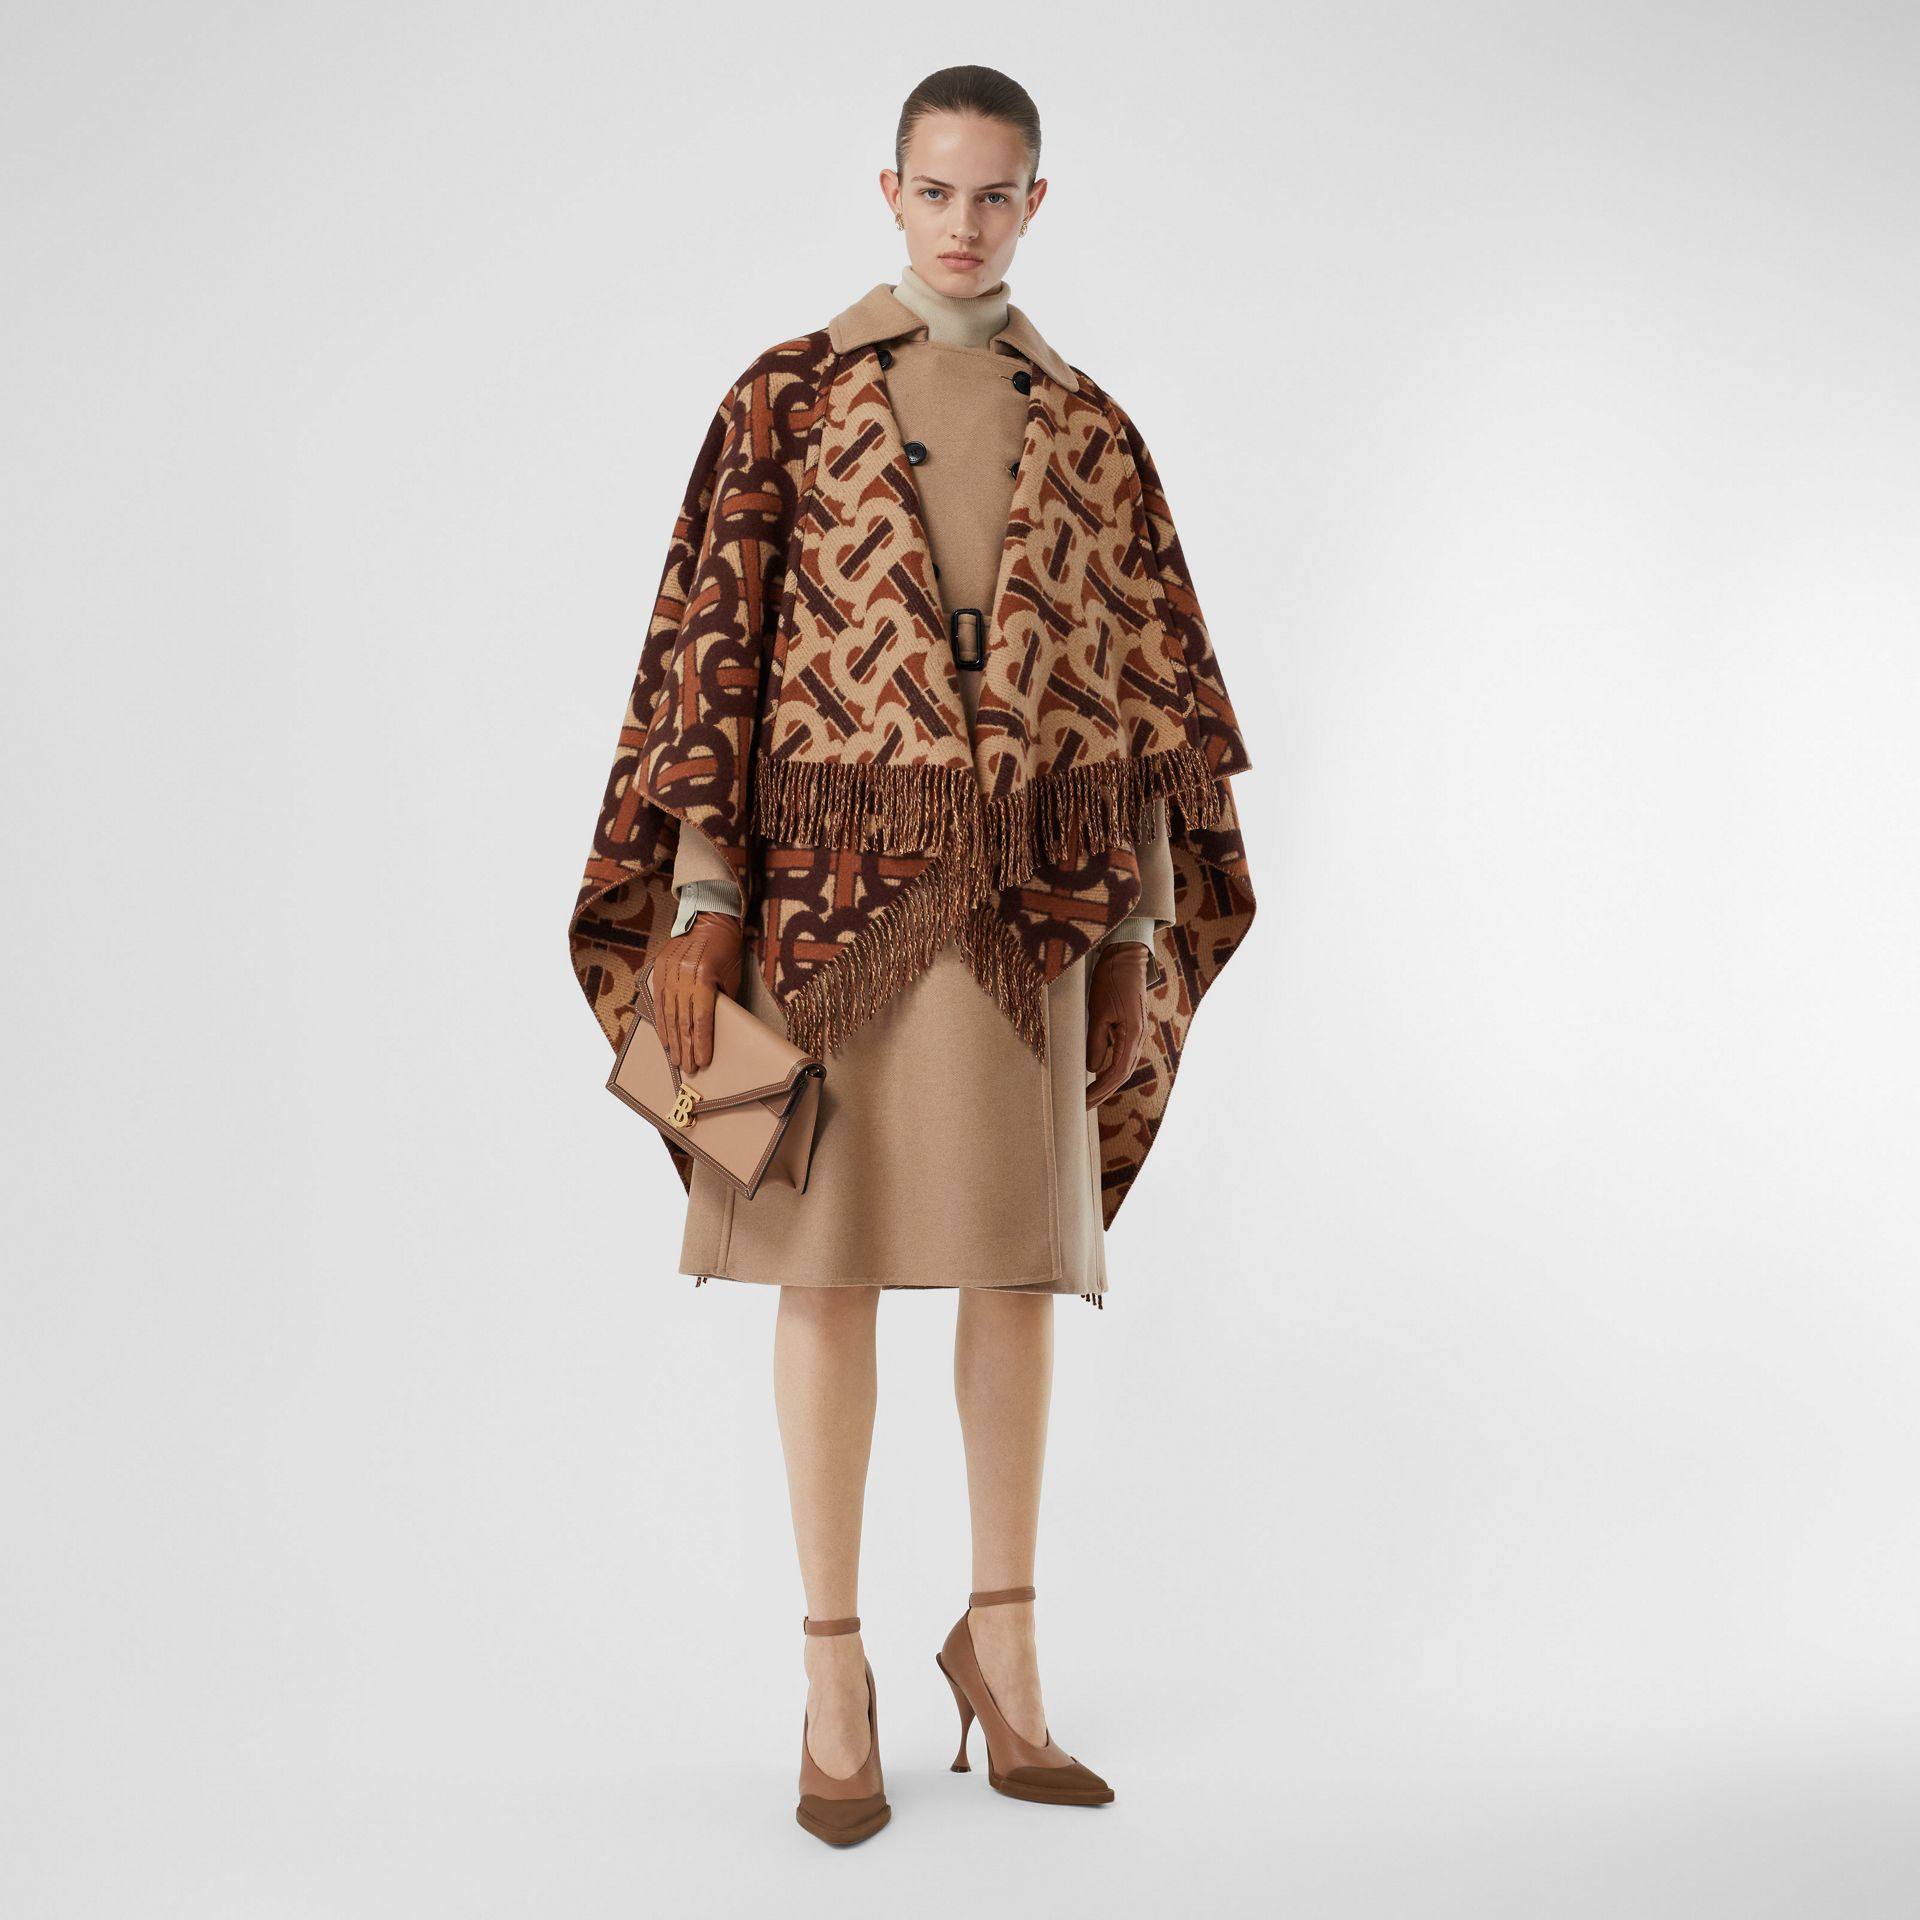 Monogram Merino Wool Cashmere Jacquard Cape in Dark Mocha - Women | Burberry - gallery image 0